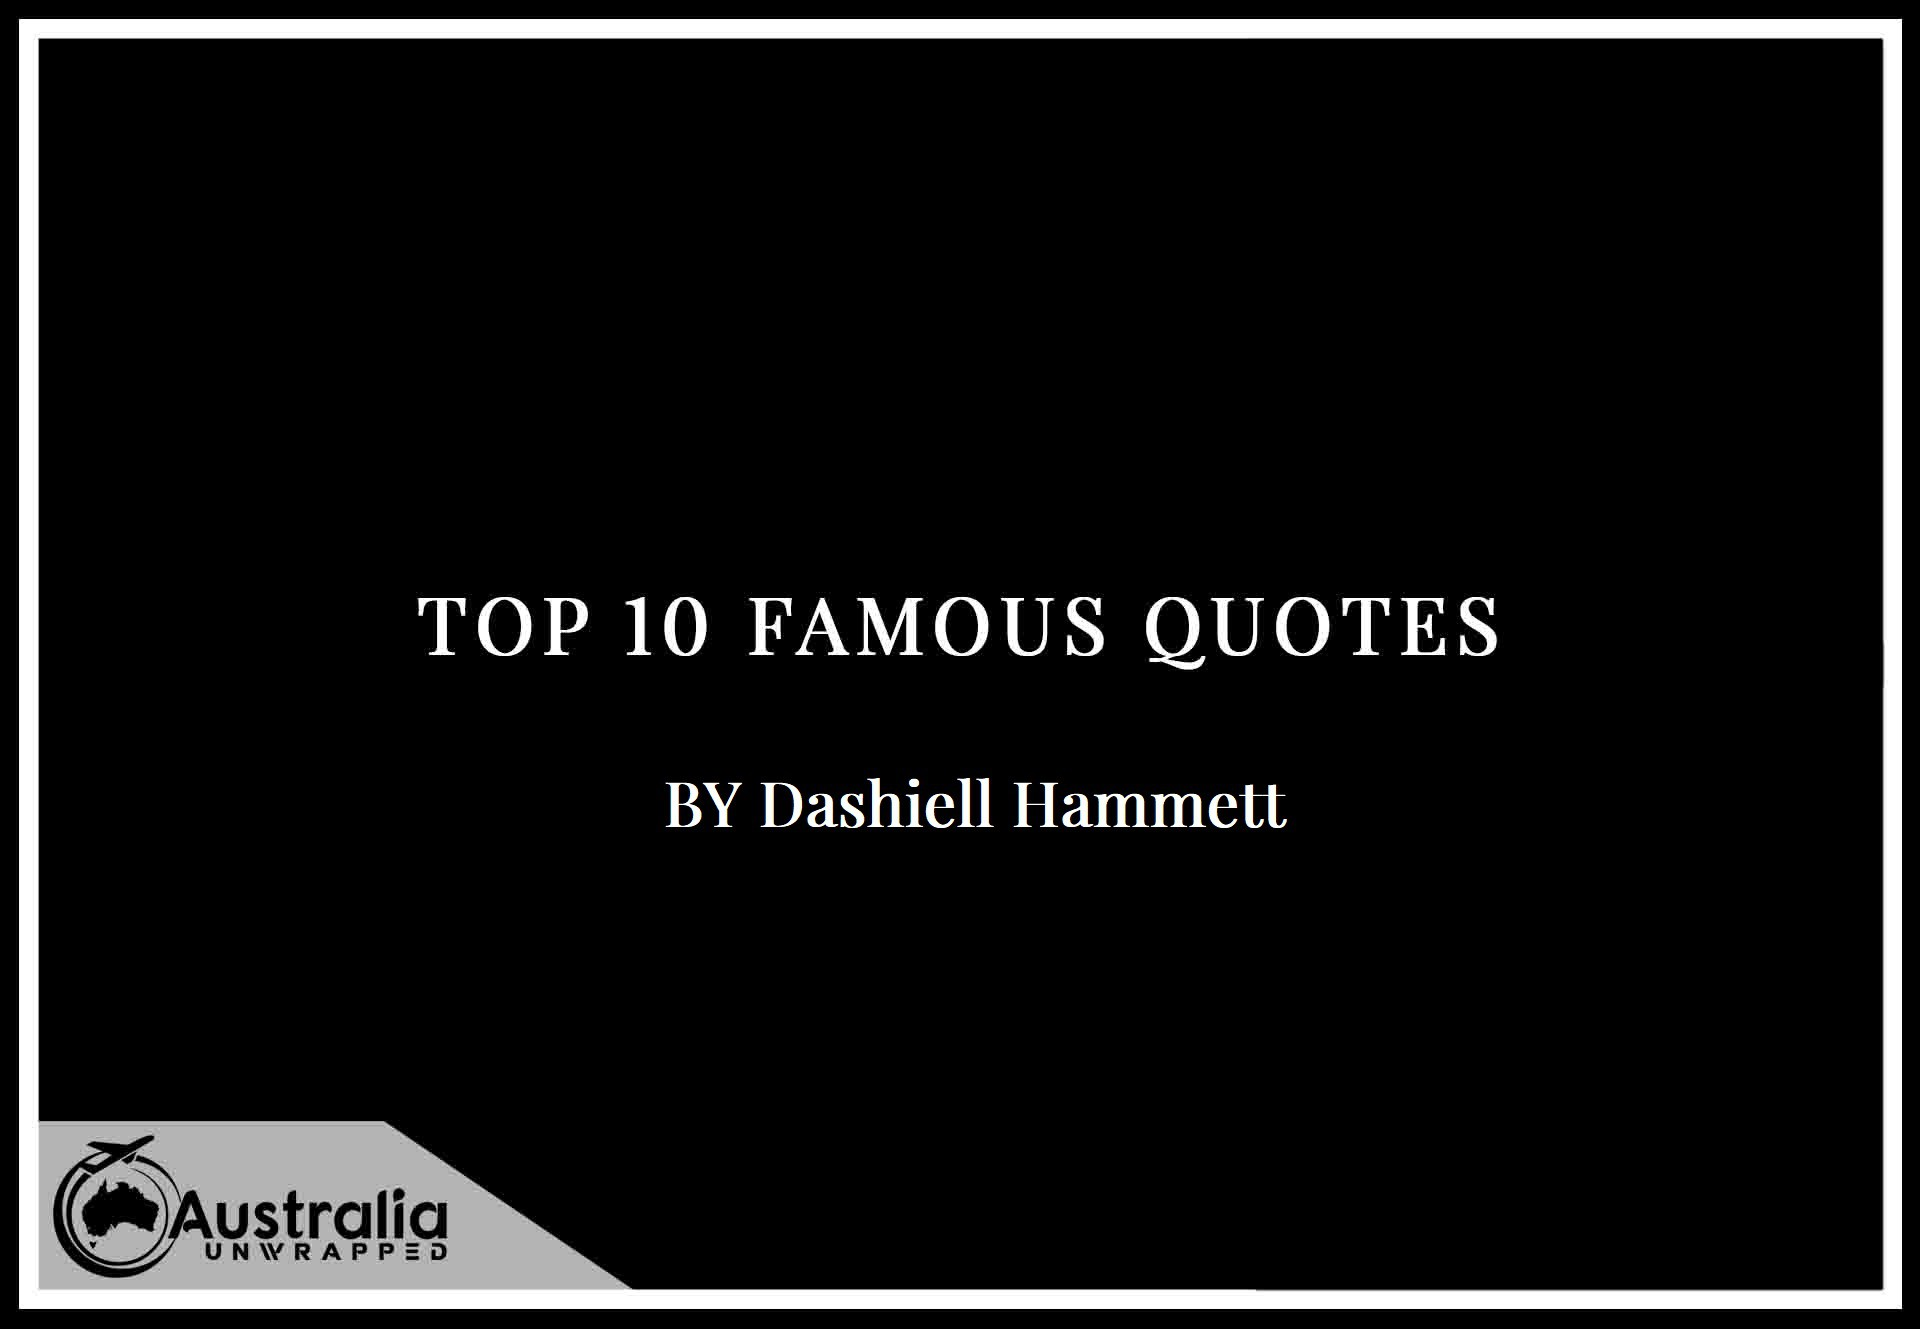 Top 10 Famous Quotes by Author Dashiell Hammett